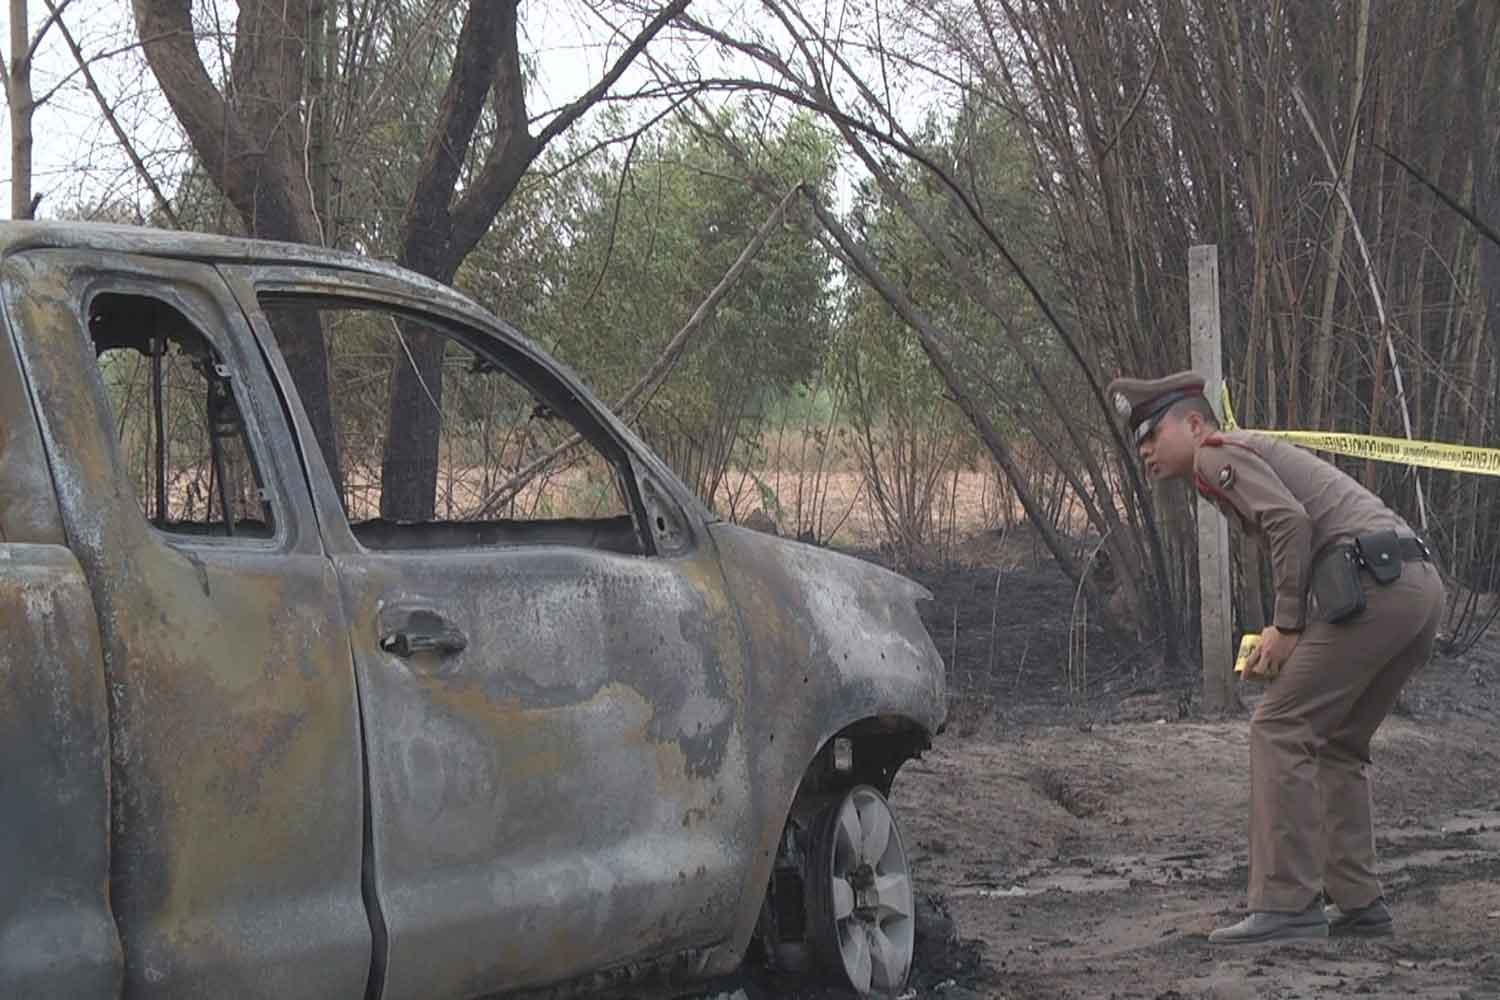 A police officer examines the burned-out pickup in which the charred body of a man was found, at a cassava plantation in Muang district of Nakhon Ratchasima on Tuesday. (Photo: Prasit Tangprasert)